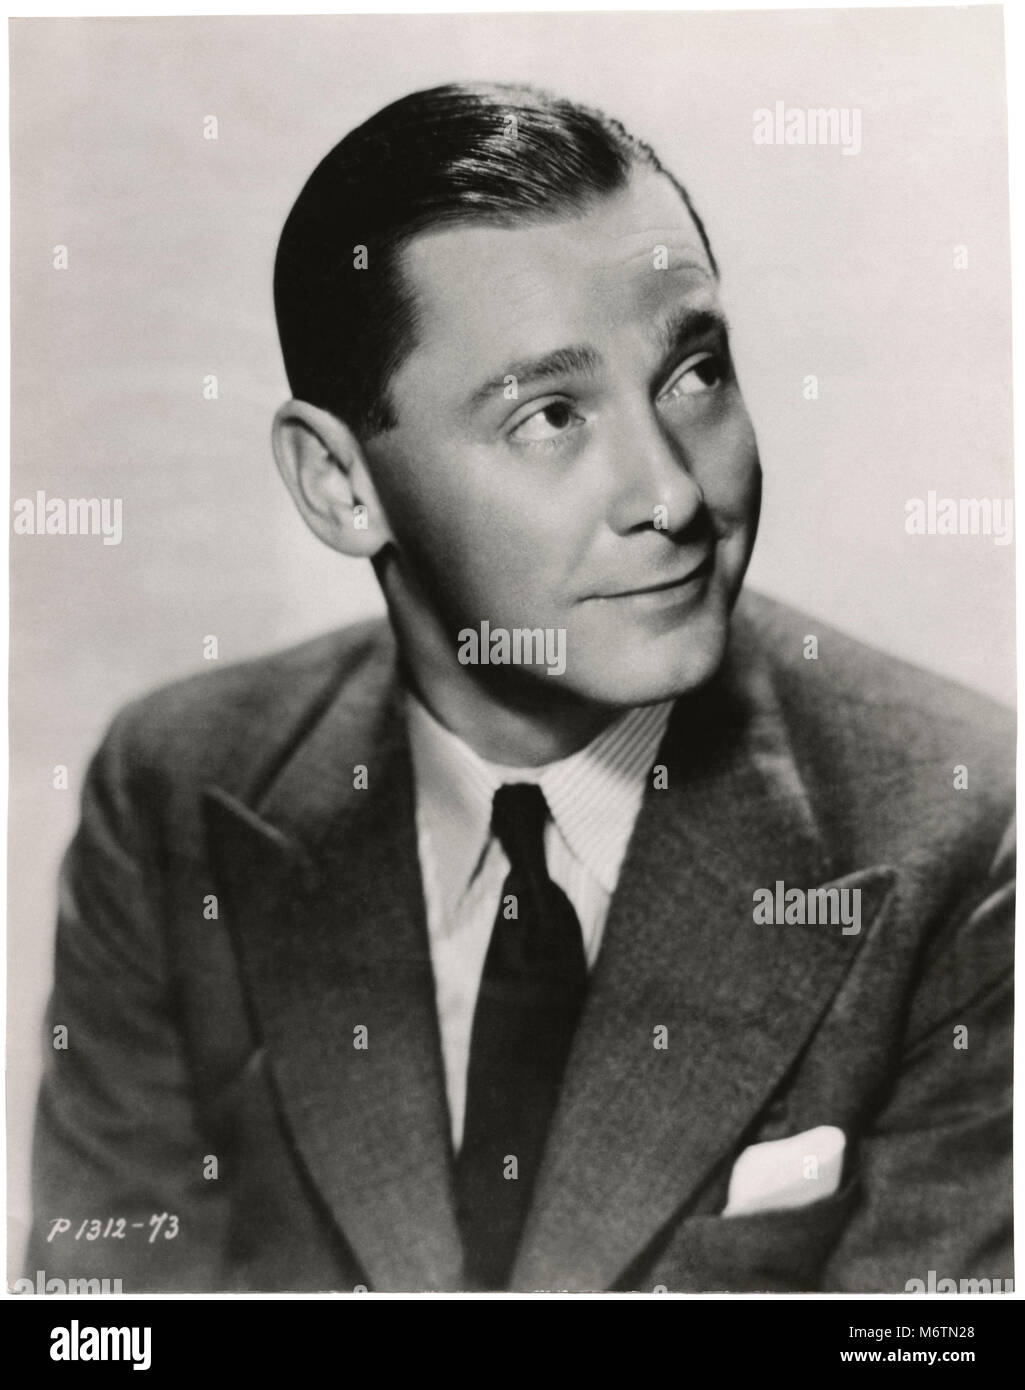 Herbert Marshall, Publicity Portrait for the Film, 'Trouble in Paradise', Paramount Pictures, 1932 - Stock Image